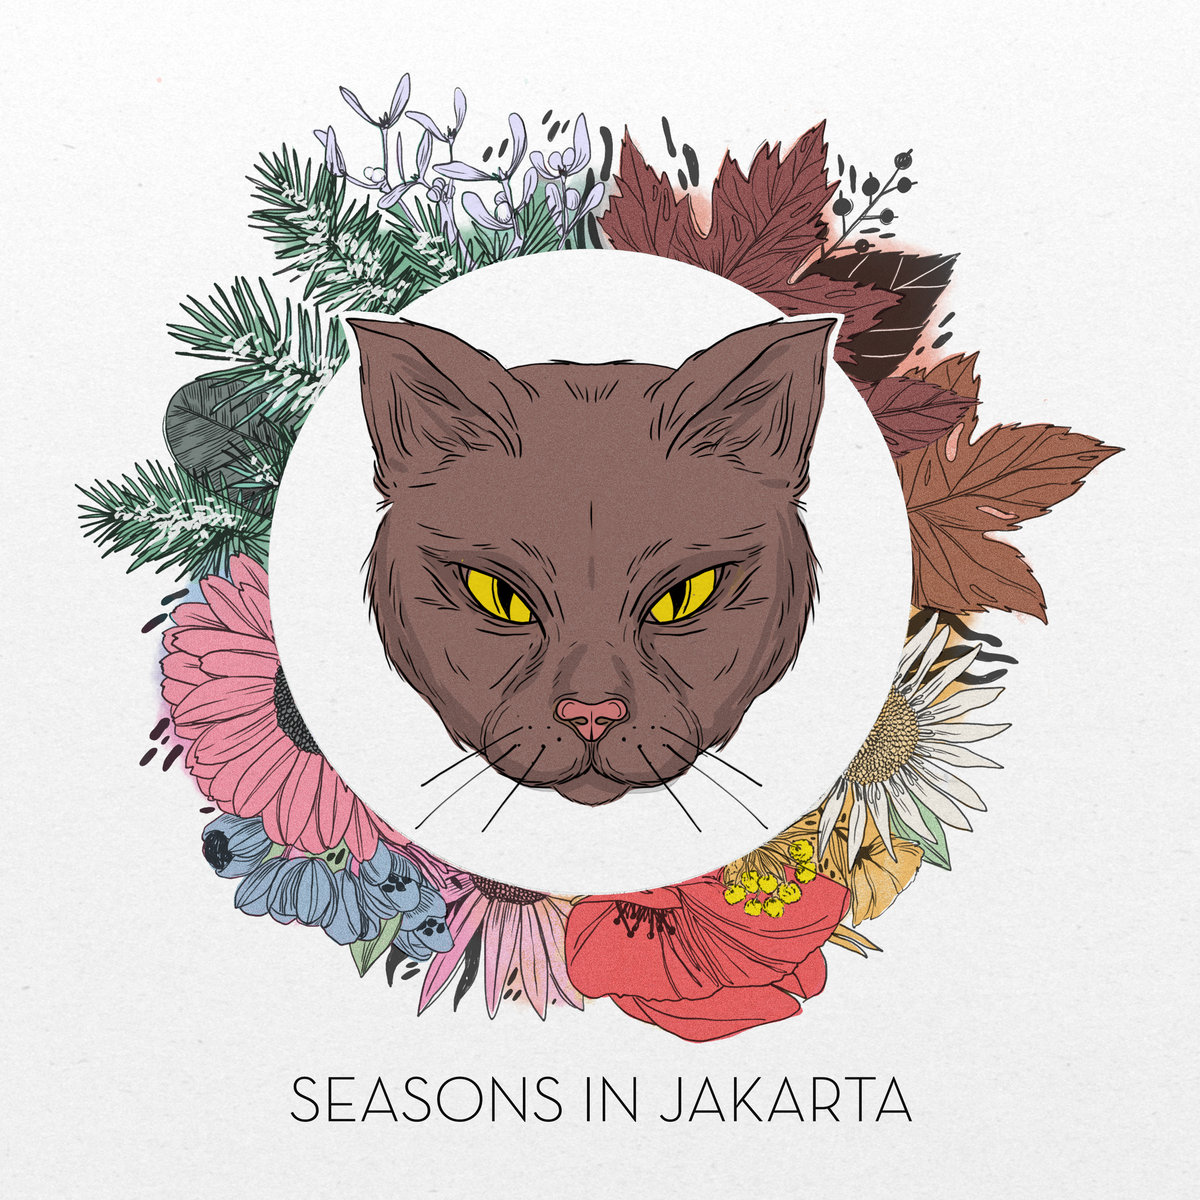 Listen: Seasons in Jakarta (FloFilz x The Deli, Like, K, Le Maestro & Otis Junior x Dr. Dundiff)